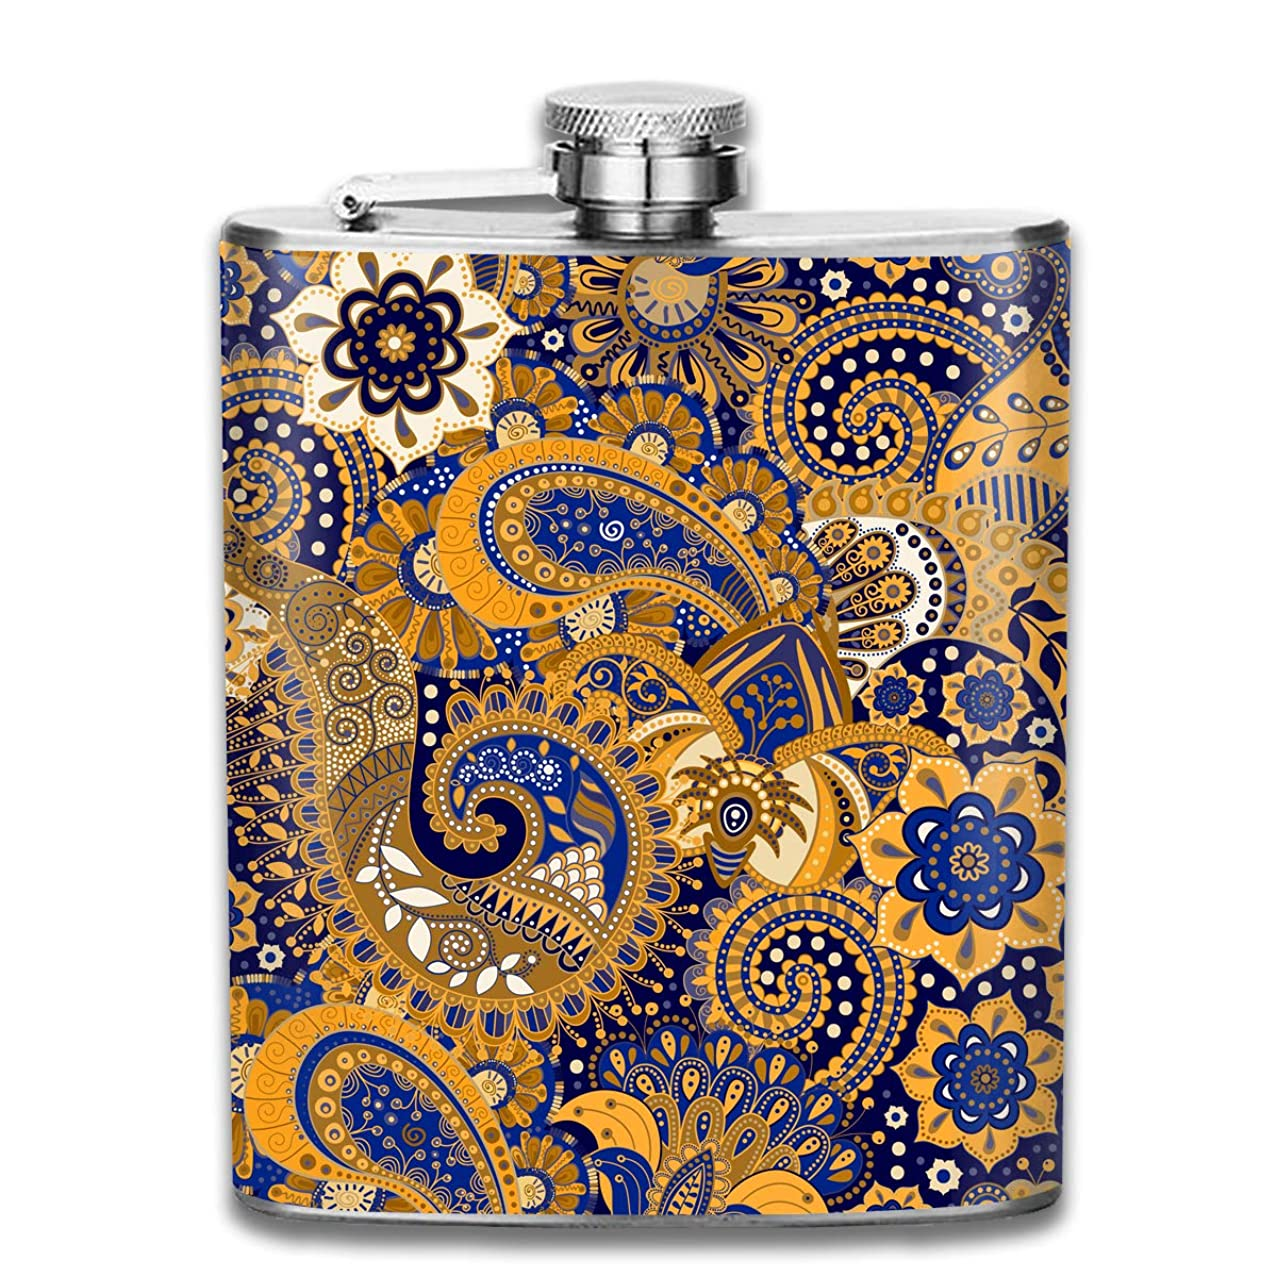 TPSXXY Yellow Blue Floral Pattern Stainless Steel 7 Oz Hip Flask Men Women Silver Alcohol Whiskey Liquor